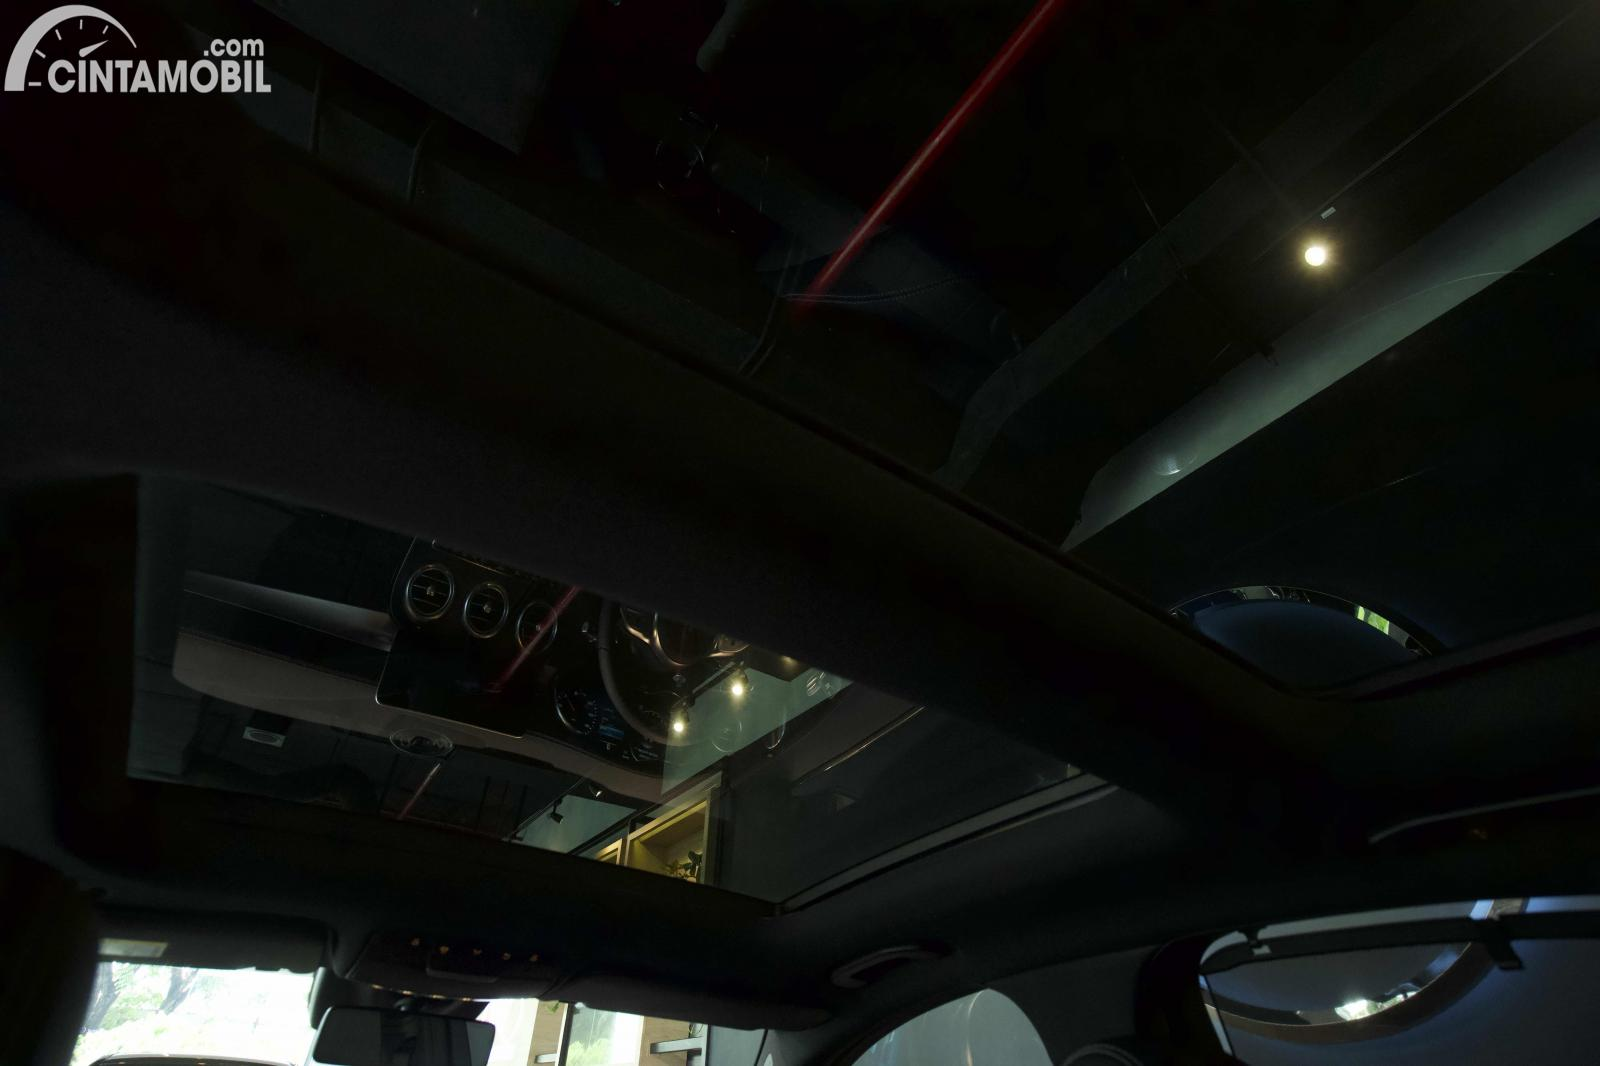 Foto panoramic Roof Mercedes-Benz C300 AMG Lina Final Edition 2021